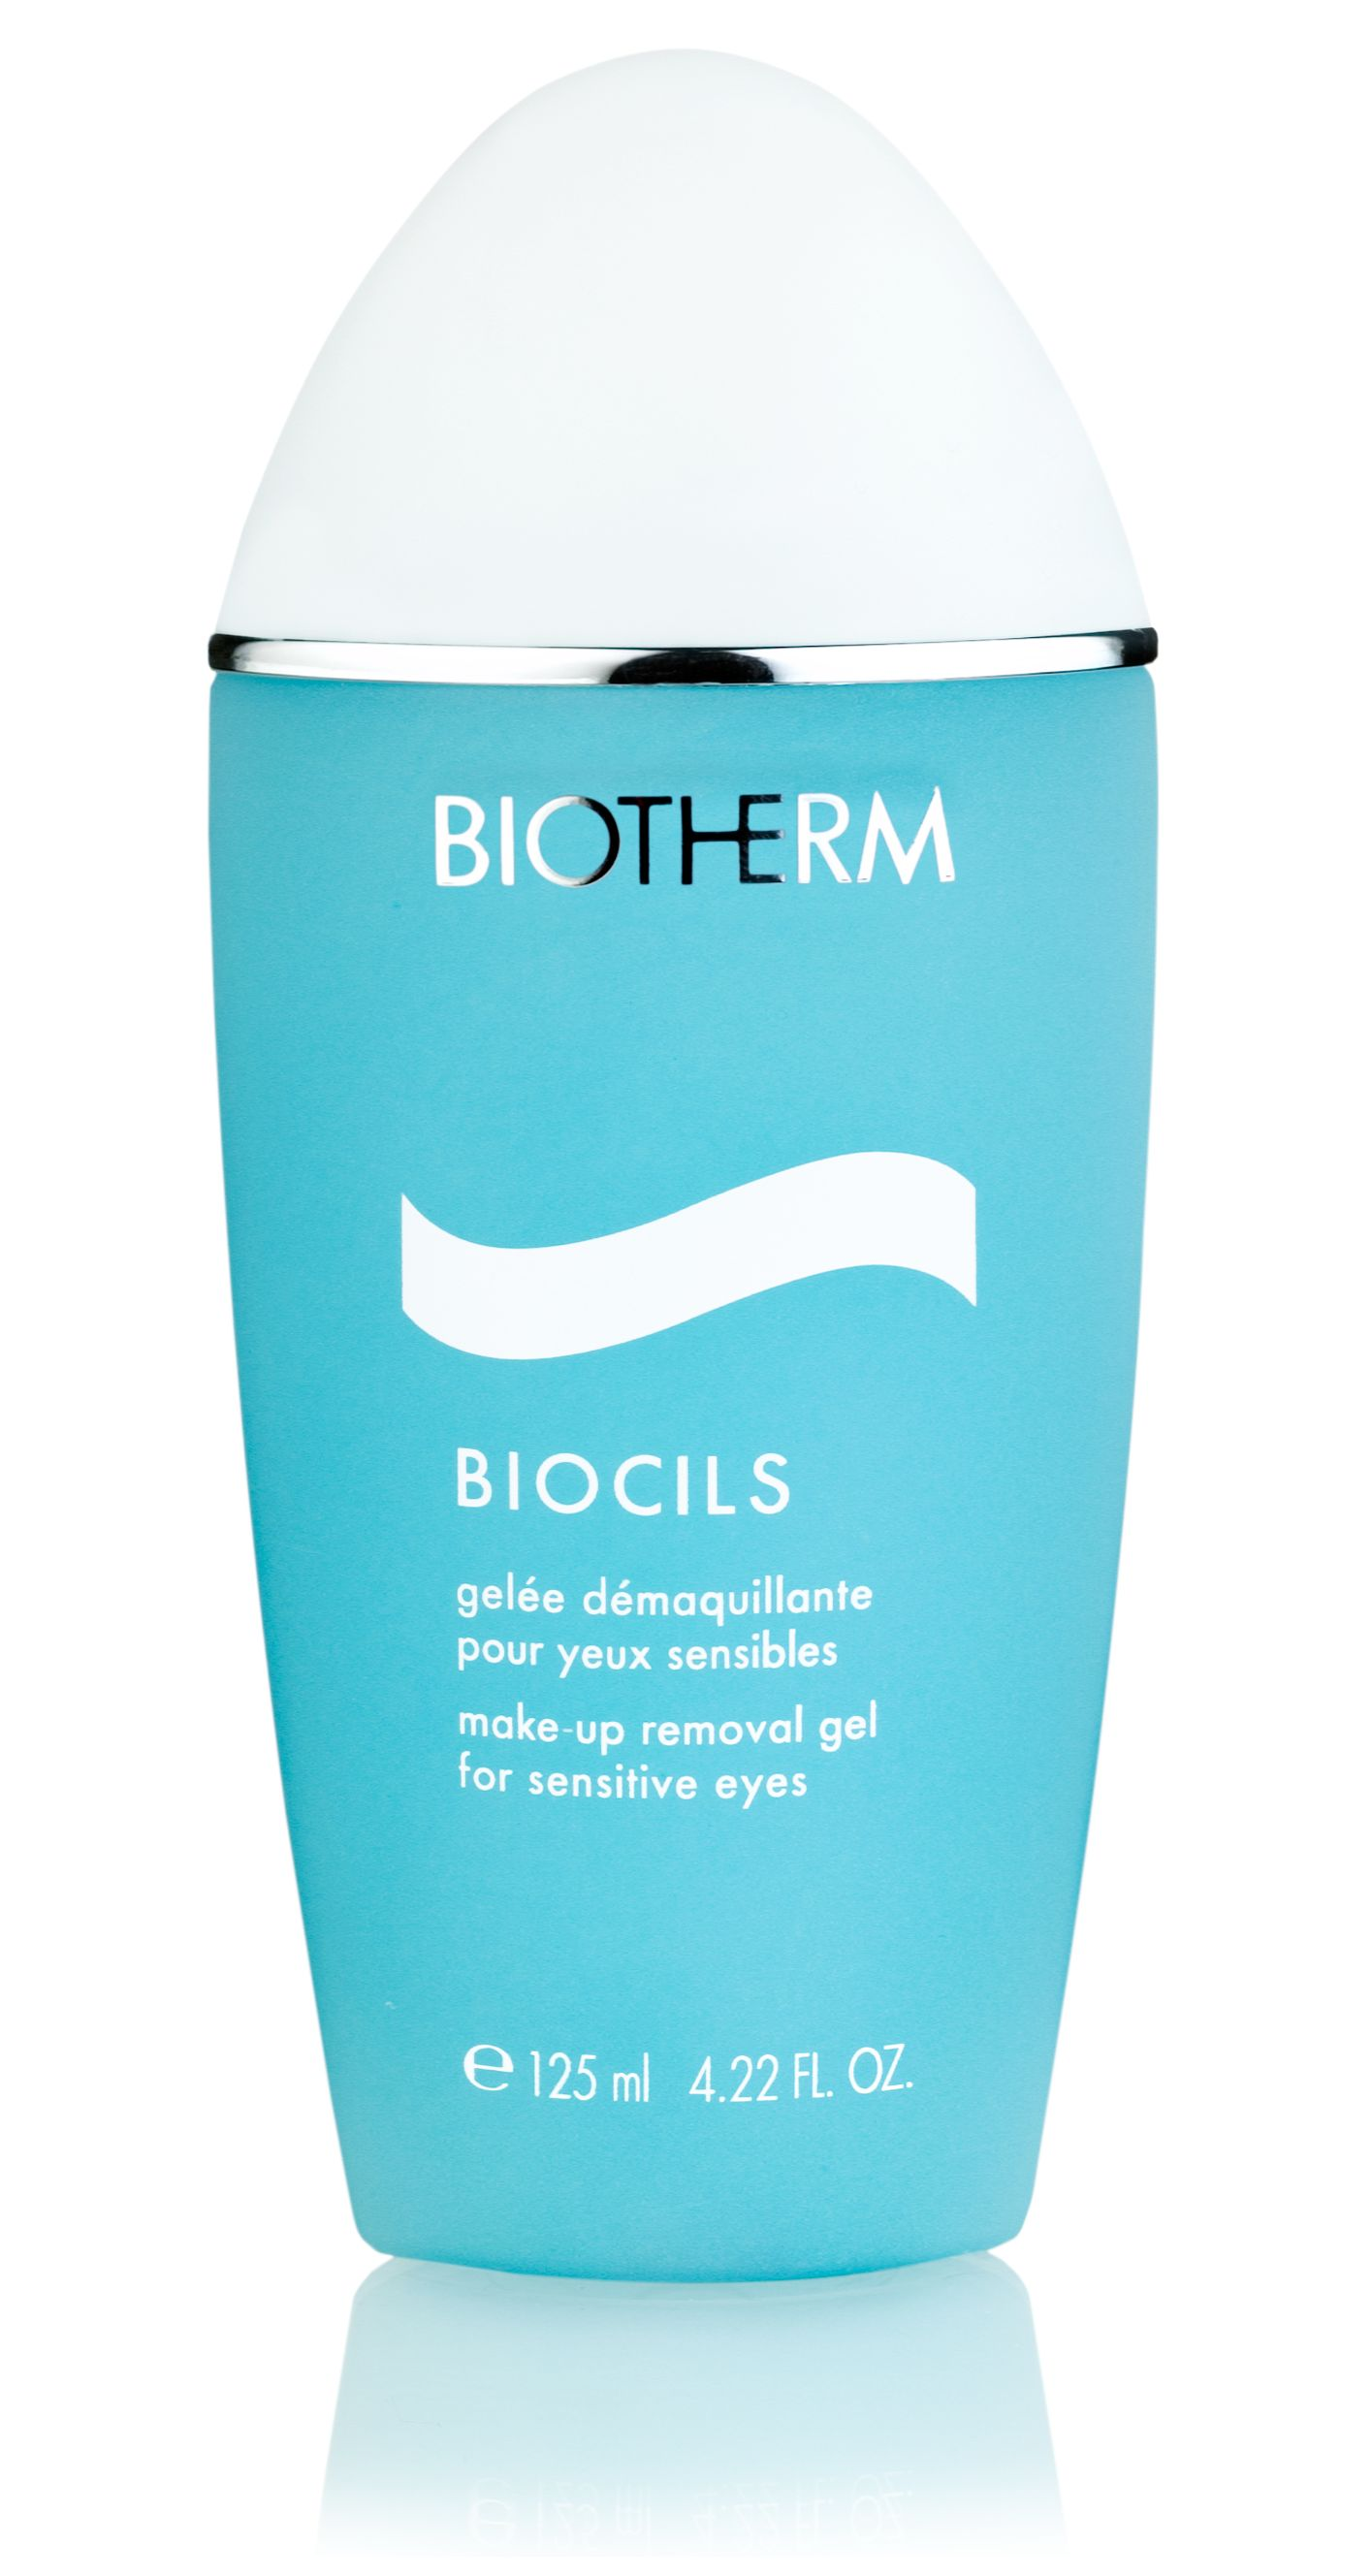 125ml Biocils Make-Up Removal Gel, Sensitive Eyes